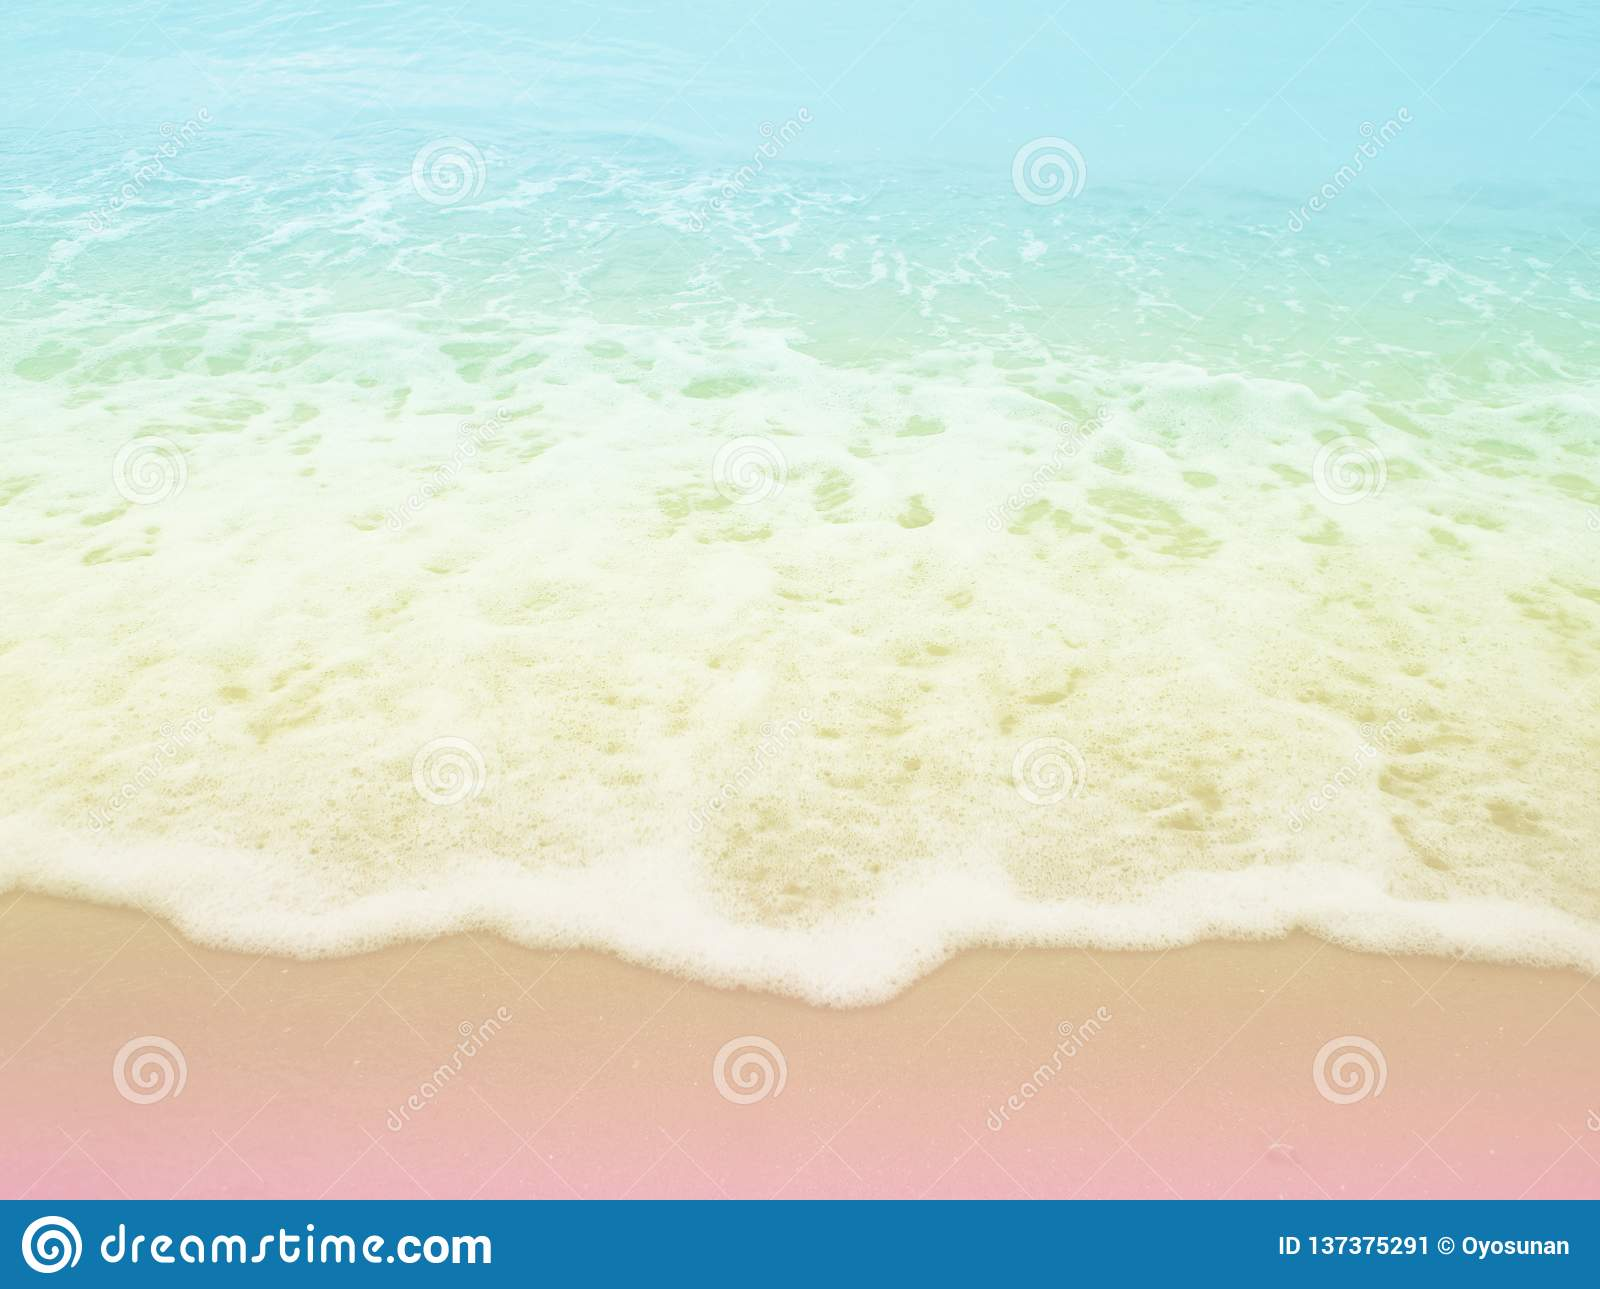 Sea beach with pastel colored background.